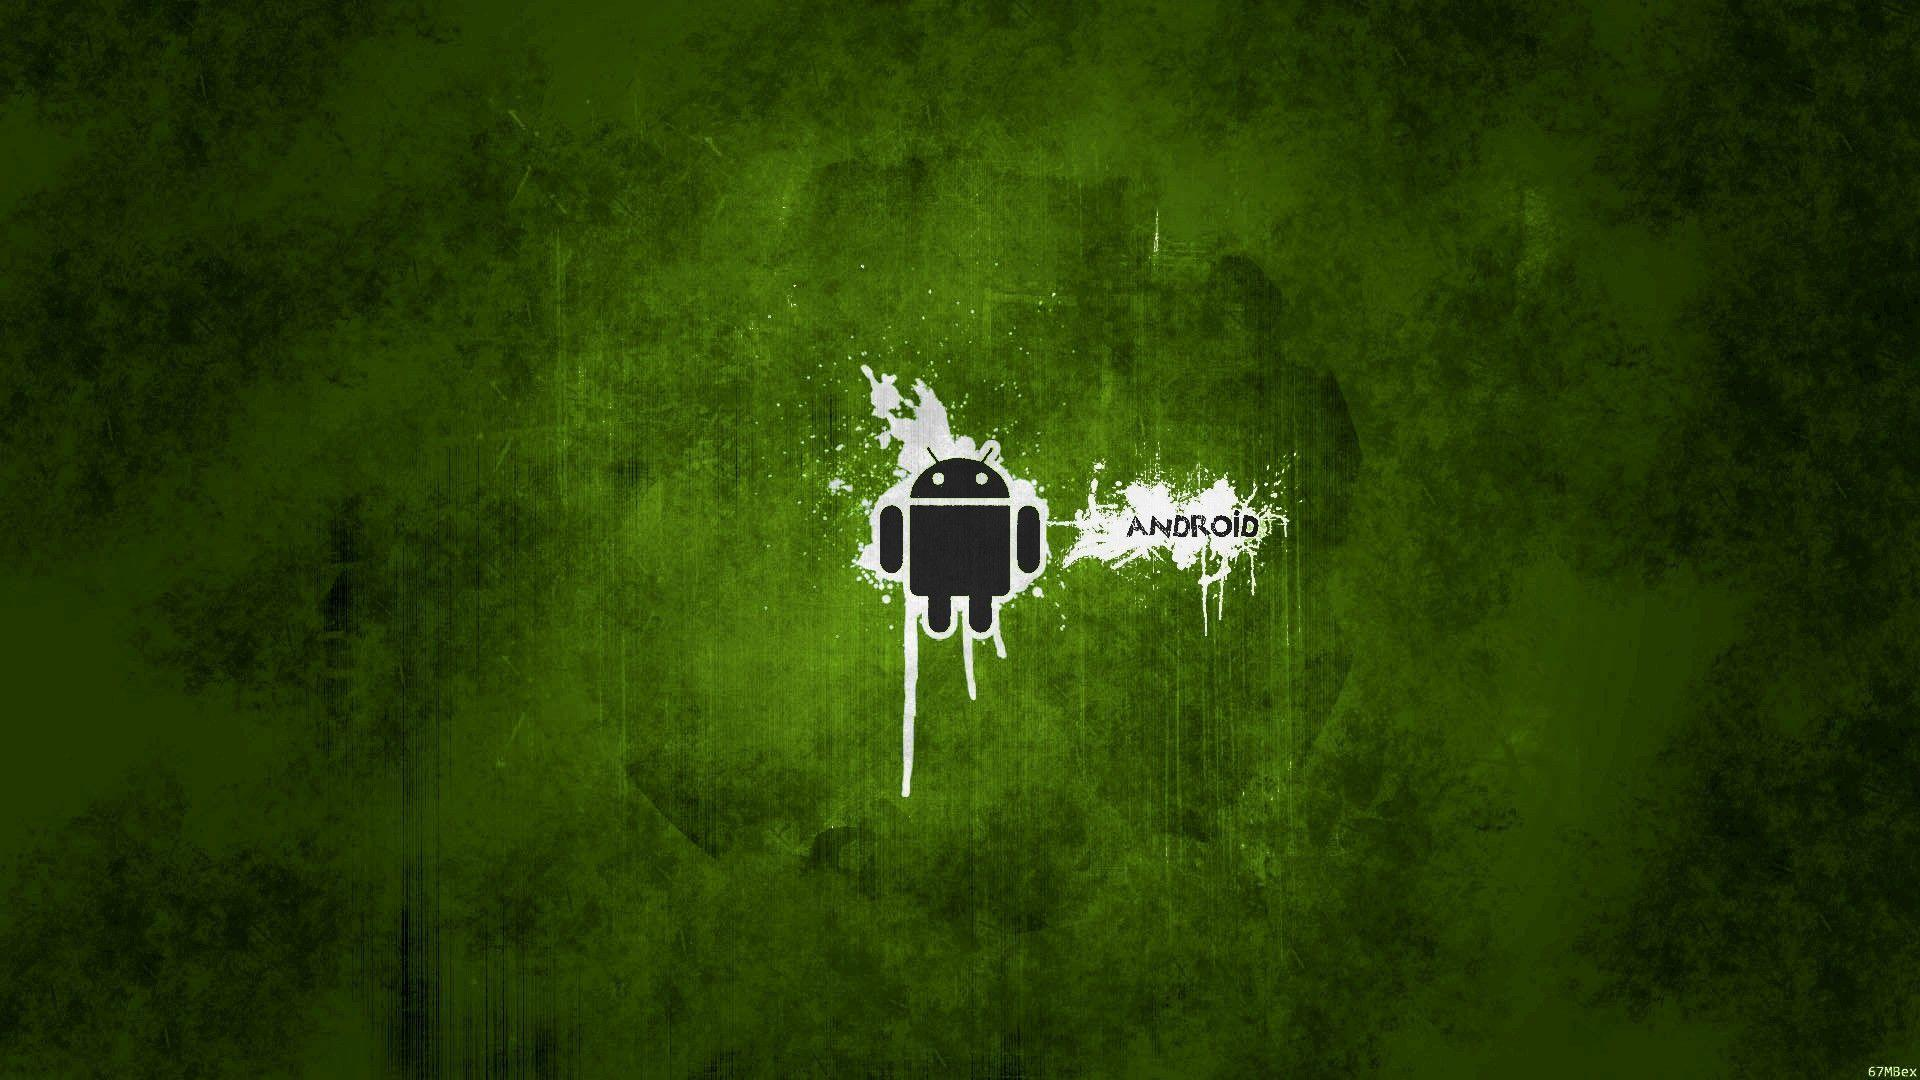 Wallpaper download android - Mind Blowing Android Logo Free Desktop Hd Wallpaper 1920x1200px